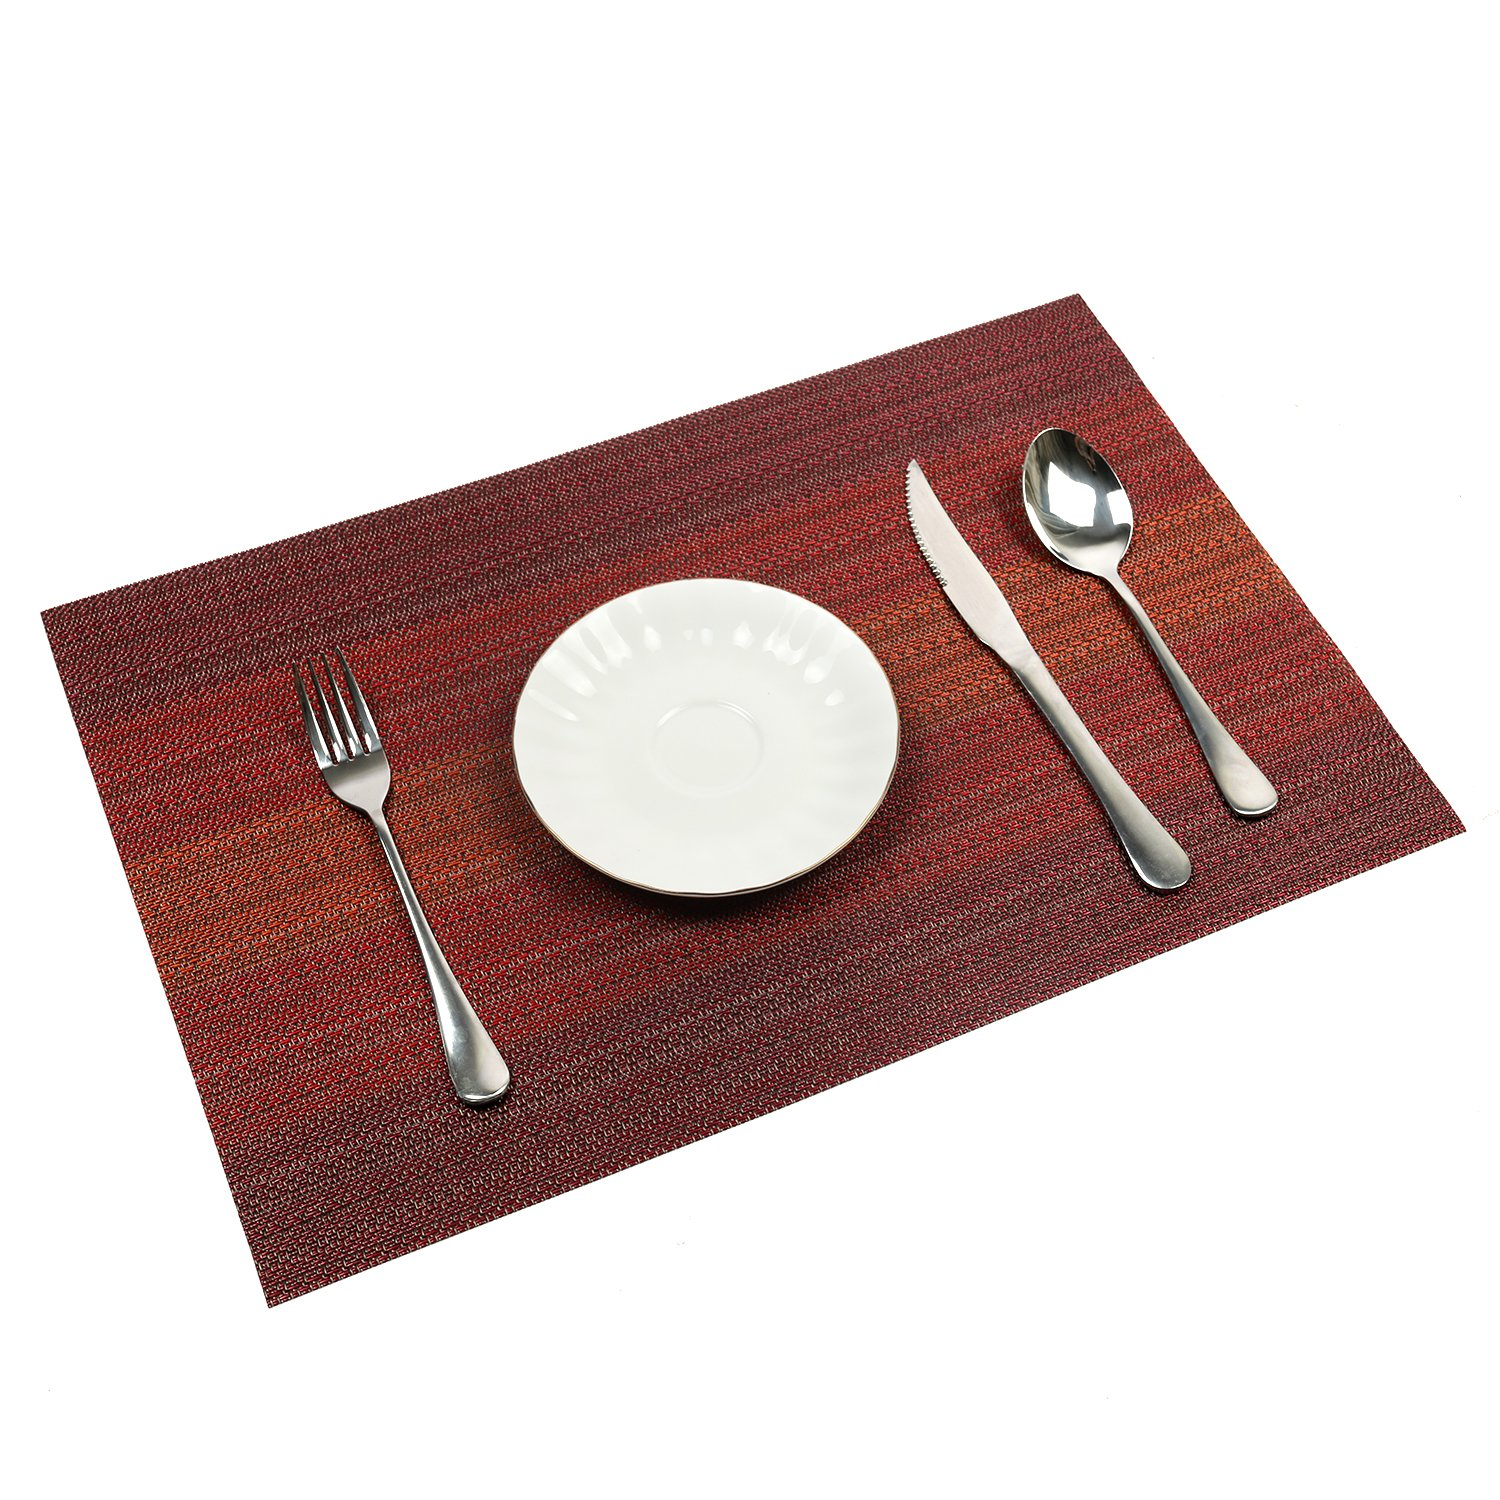 PAUWER Placemats Set of 6 Heat Insulation Stain Resistant Placemat for Dining Table Durable Crossweave Woven Vinyl Kitchen Table Mats Placemat (Red) by Pauwer (Image #2)